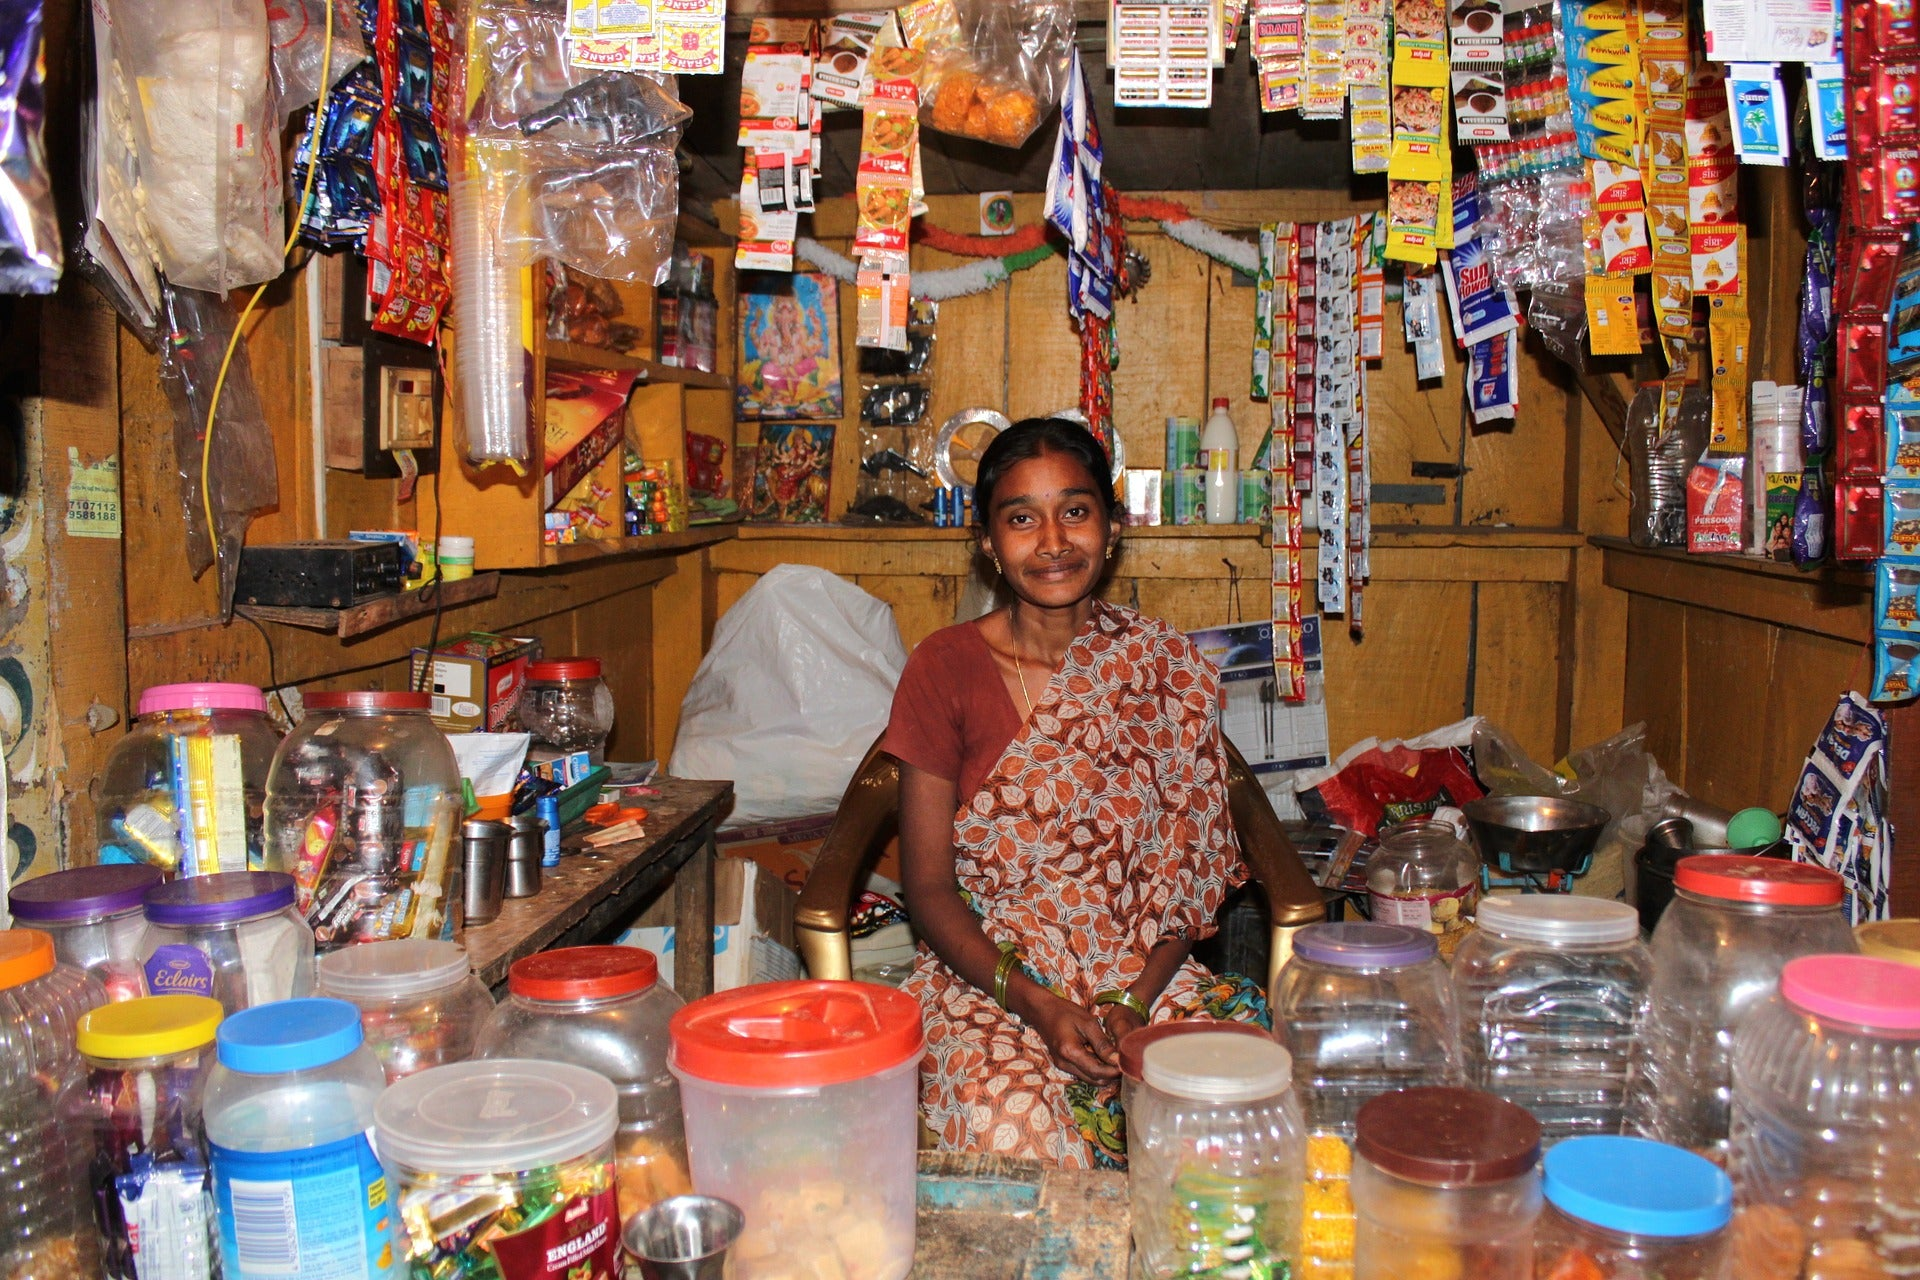 Why No Women Work In Saree Shops, Bra Shops, Or Pastel-Coloured Ice Cream Parlours in India?